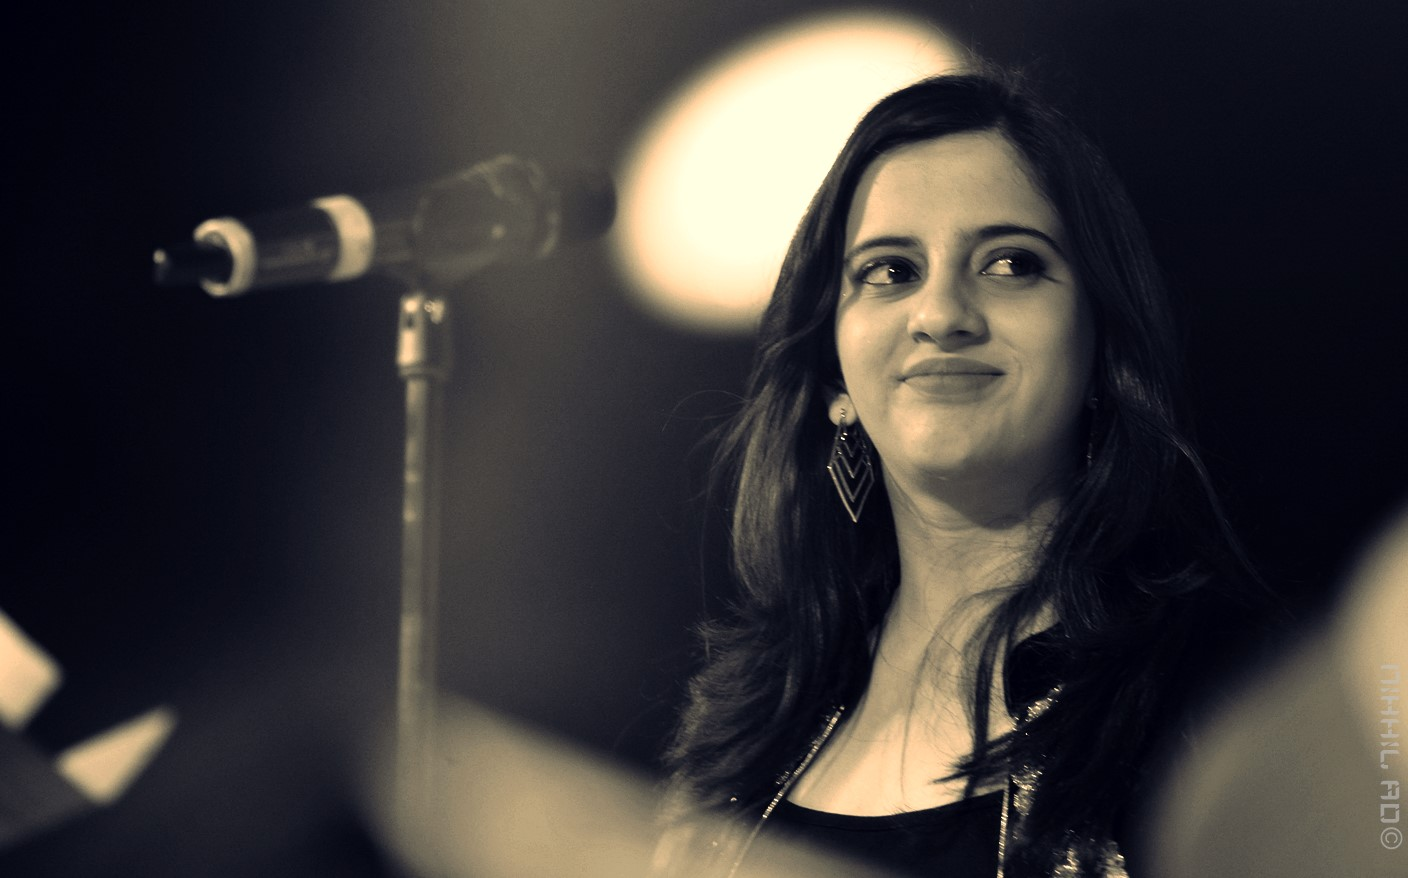 Nagpur's homegrown singer Shrinidhi Ghatate speaks about her association with singing sensation Shankar Mahadevan, her musical journey and her future plans.